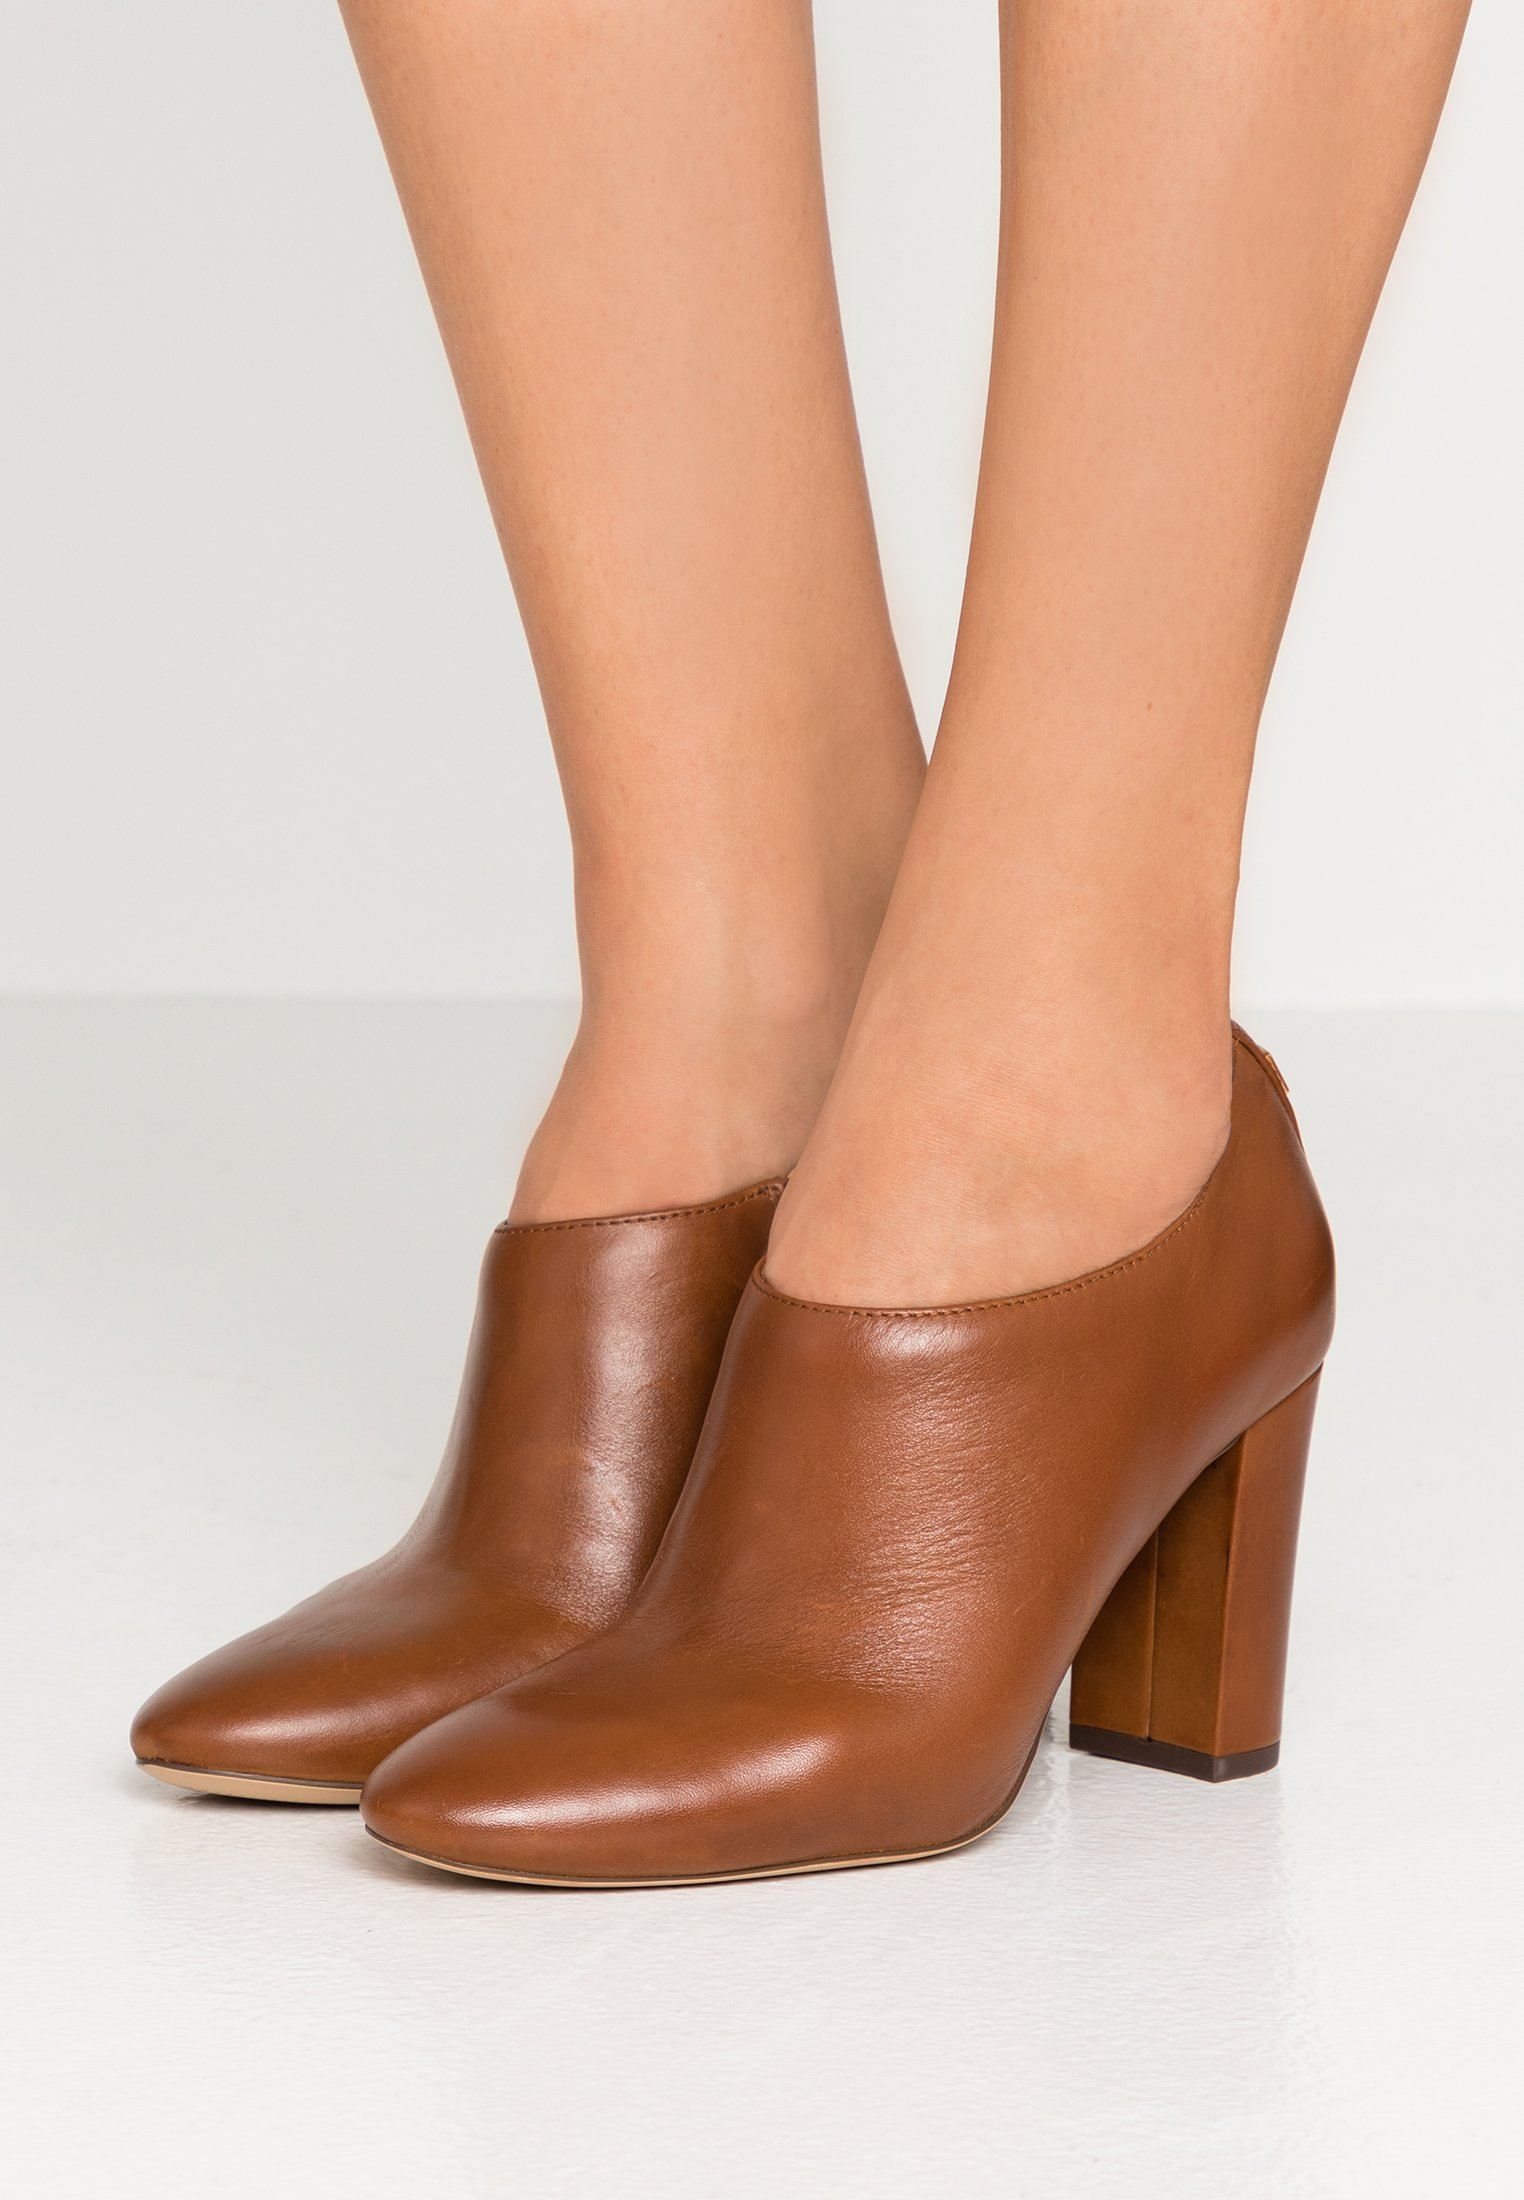 Ralph AUBREEBottines Lauren talons deep à Lauren saddle hauts tan mv80nNw